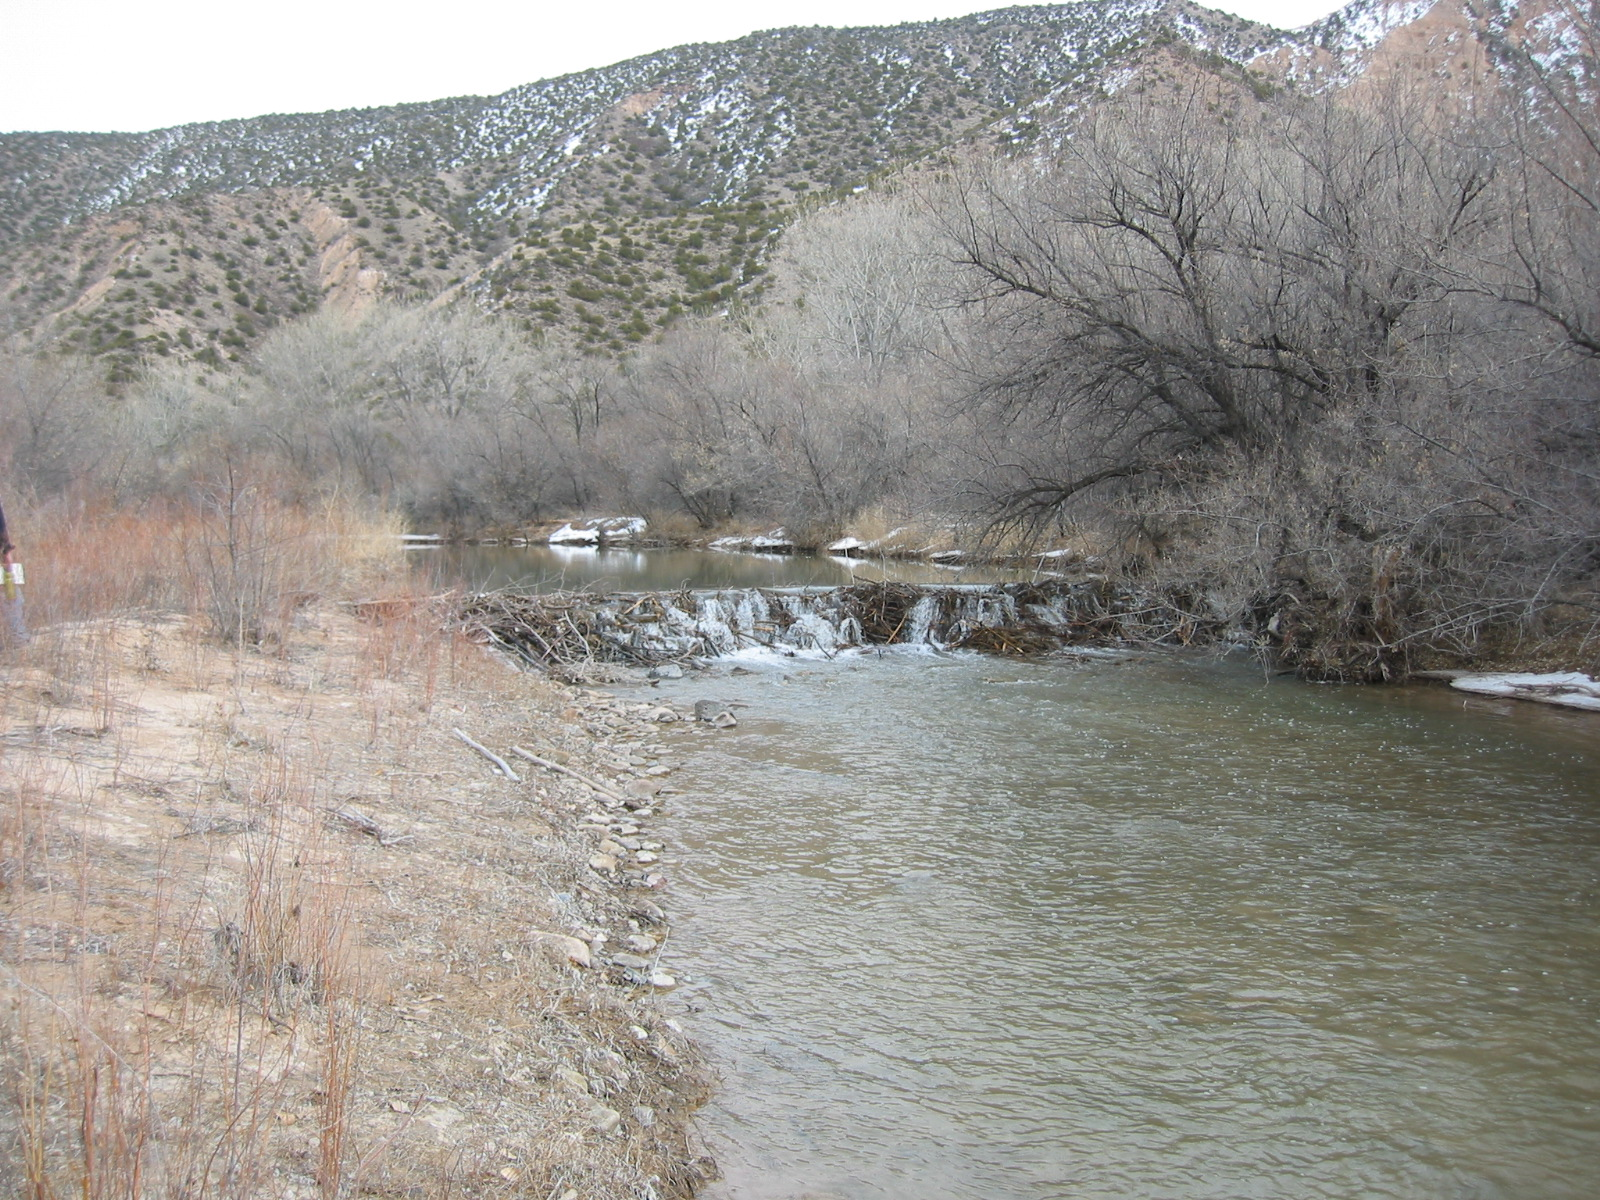 Winter on the Rio Ojo Caliente, New Mexico. A very large beaver dam across the river. Note that water continues to flow through and over the beaver dam, but a stair-step like structure has been created. We can construct a weir or check dam, or we can let beaver do it for free.